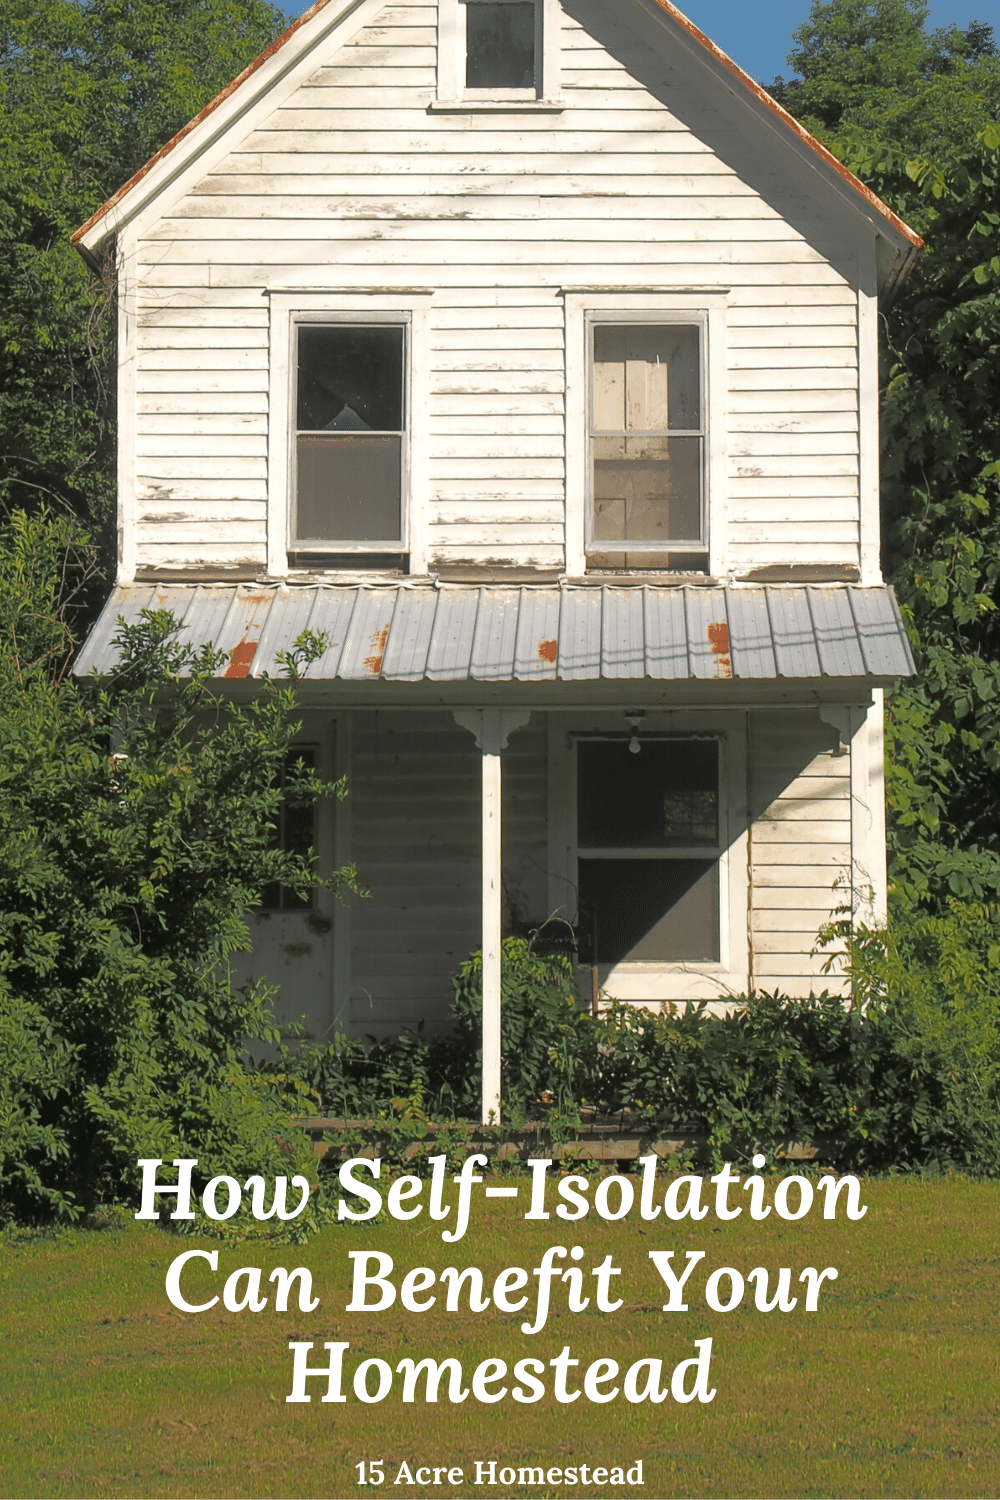 The current pandemic that is spreading through the world puts everyone at risk. But for homeowners, self-isolation from your homestead can put you in a better position to support your local community and the health services.